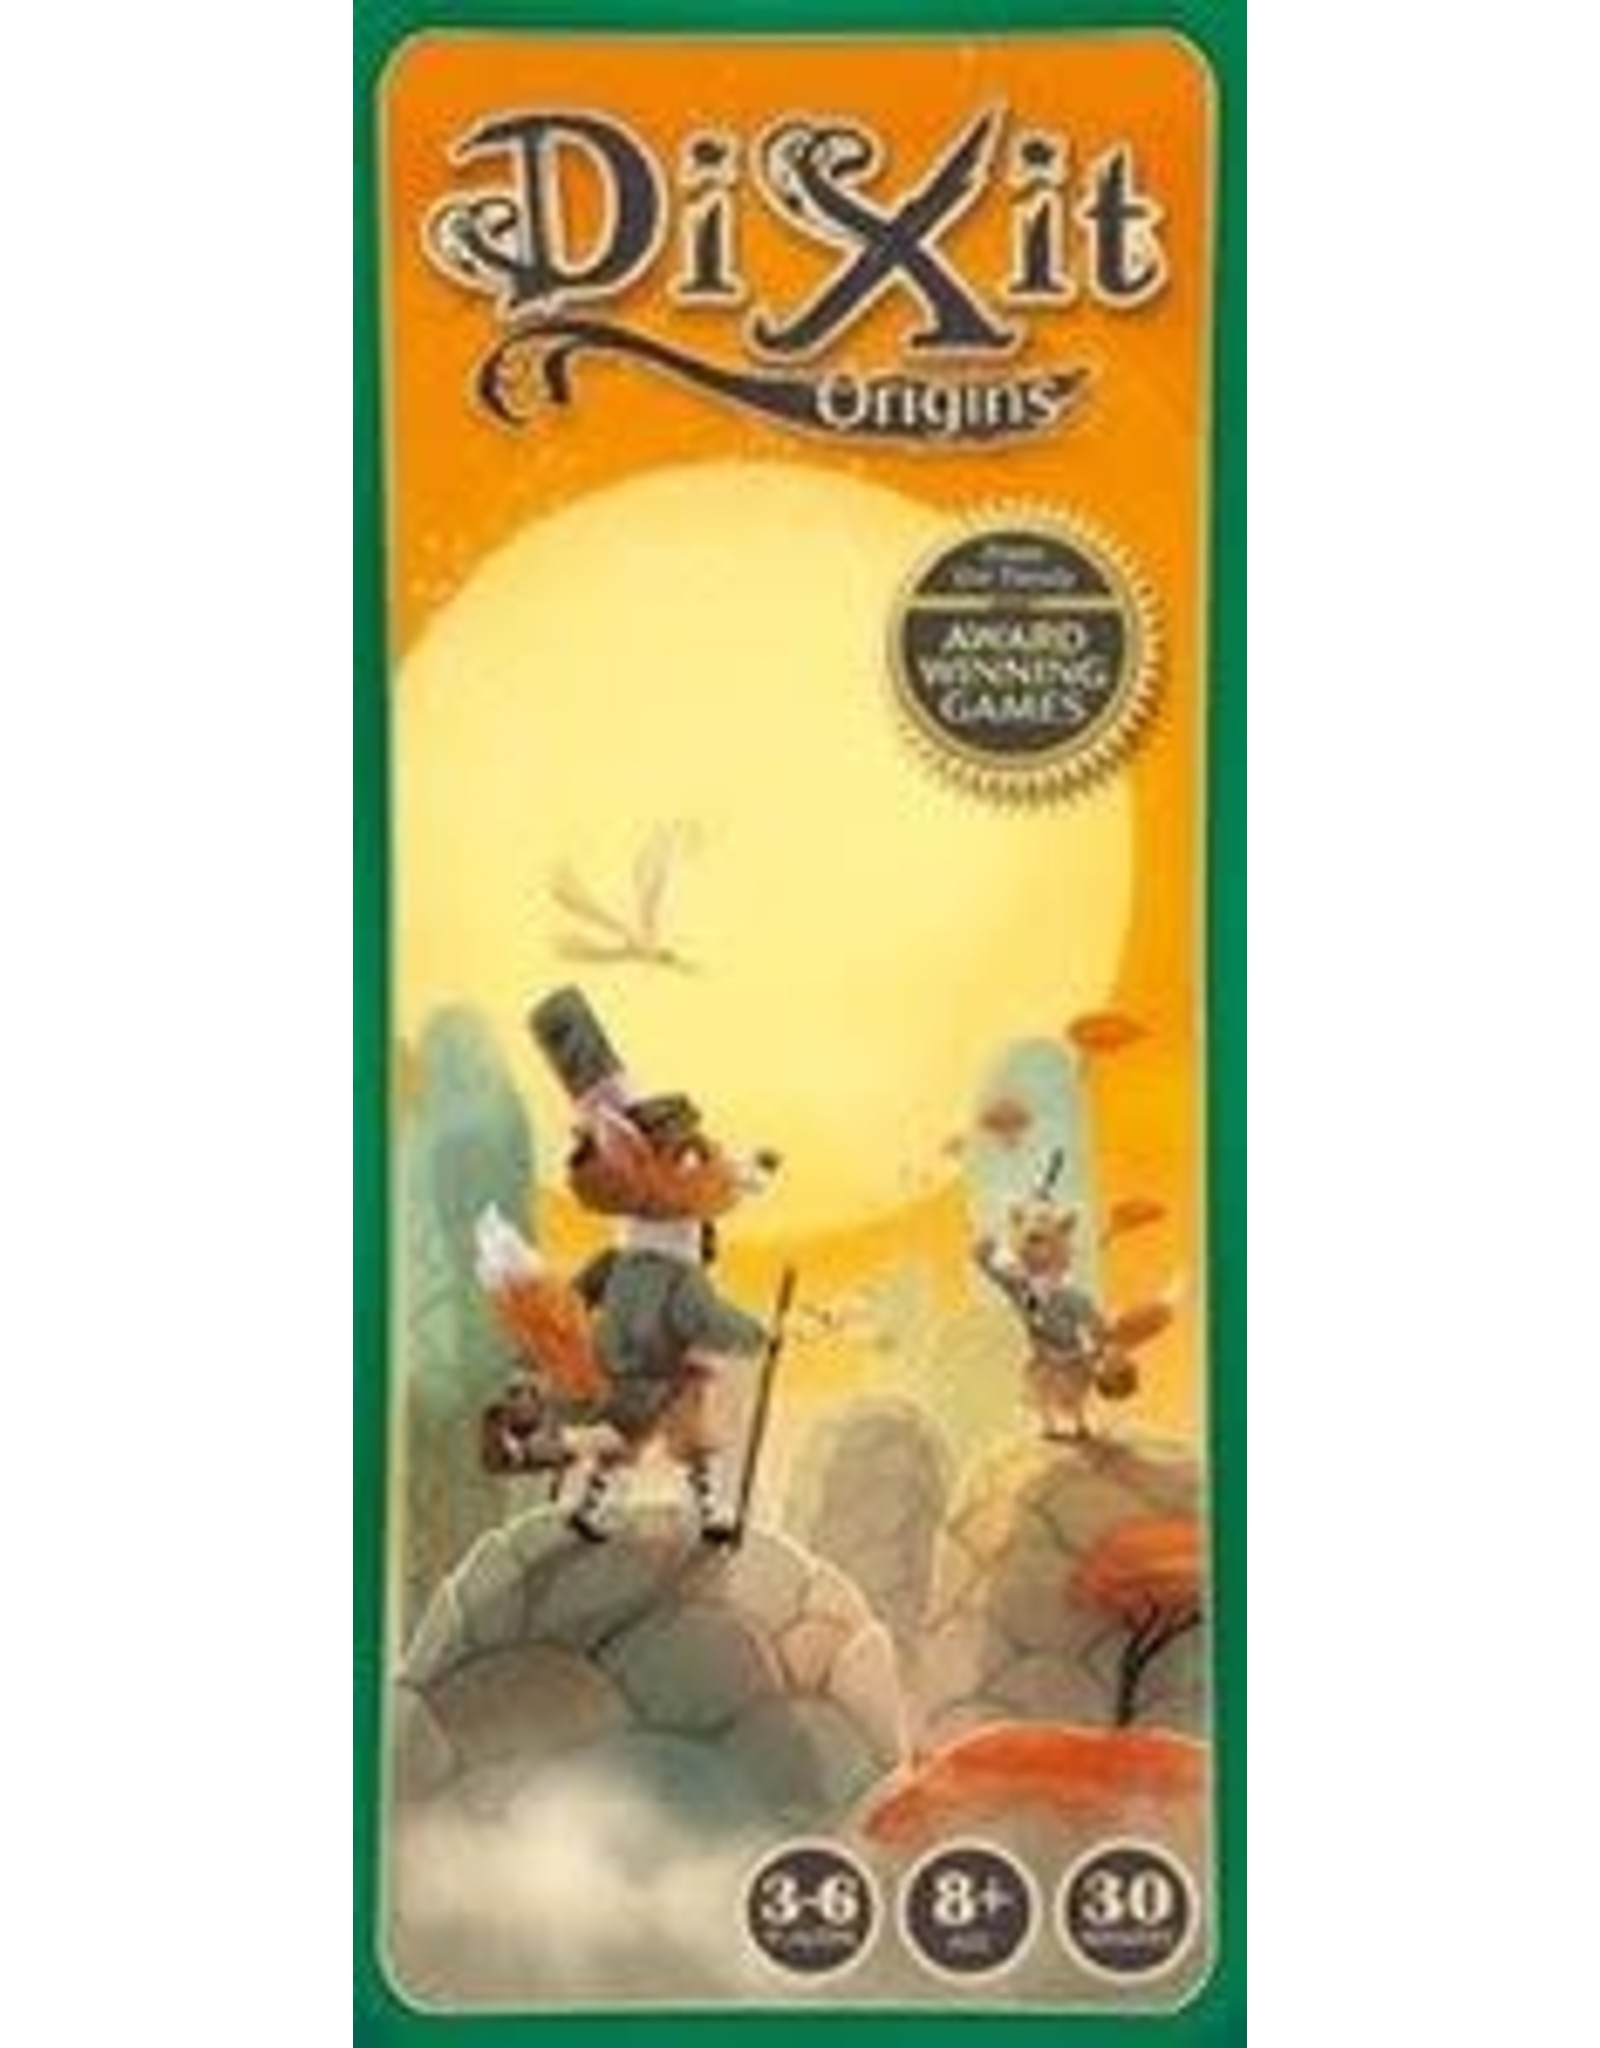 Dixit Origins Expansion Board Game